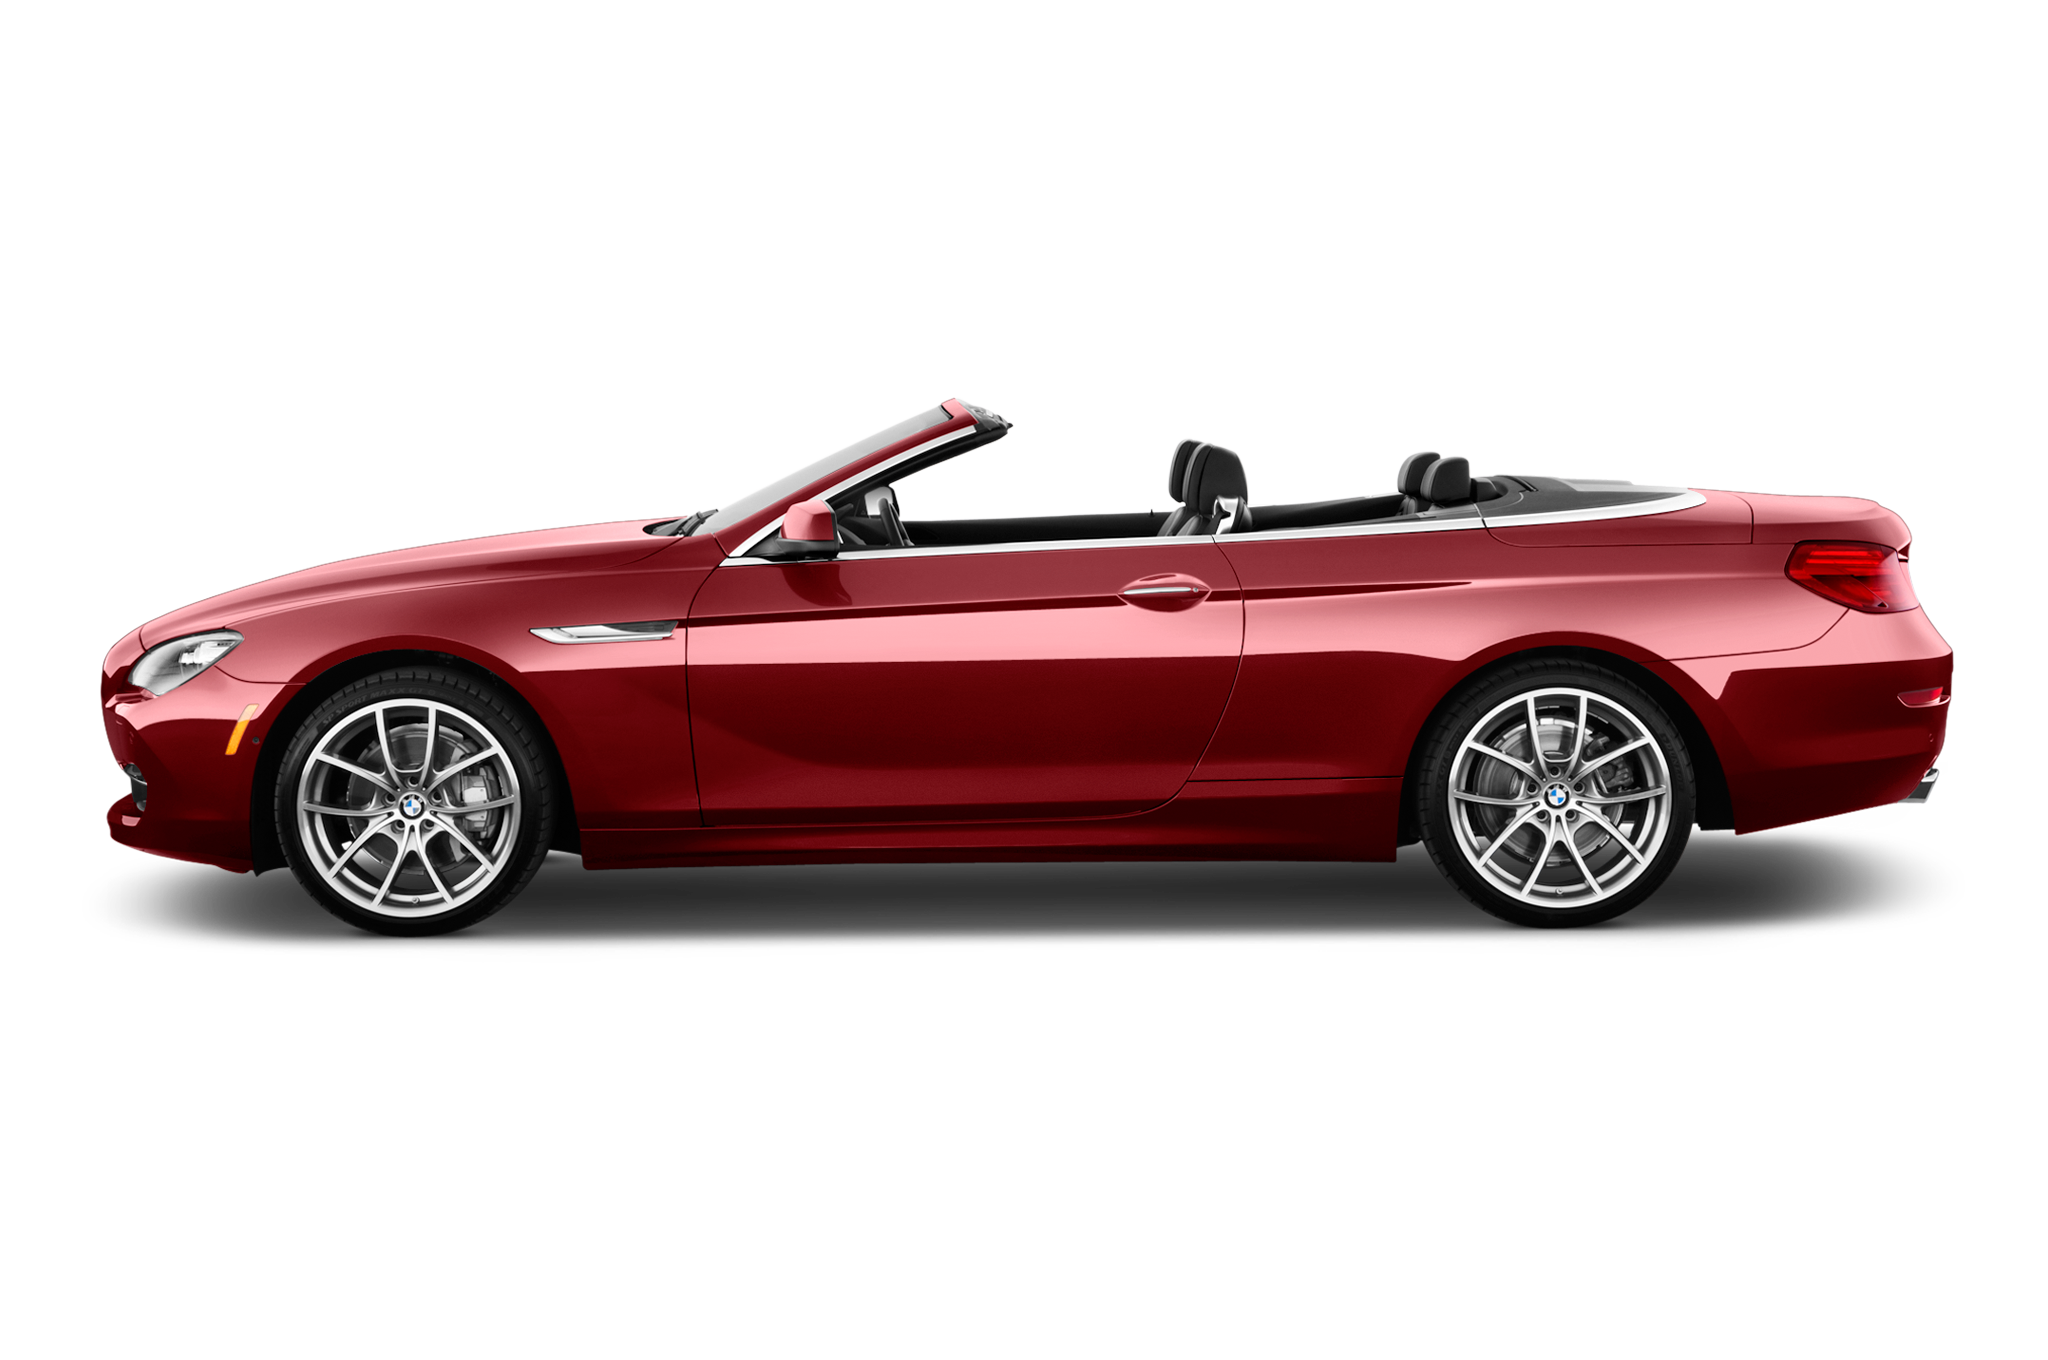 2014 bmw 6 series 650i convertible side view. Cars Review. Best American Auto & Cars Review